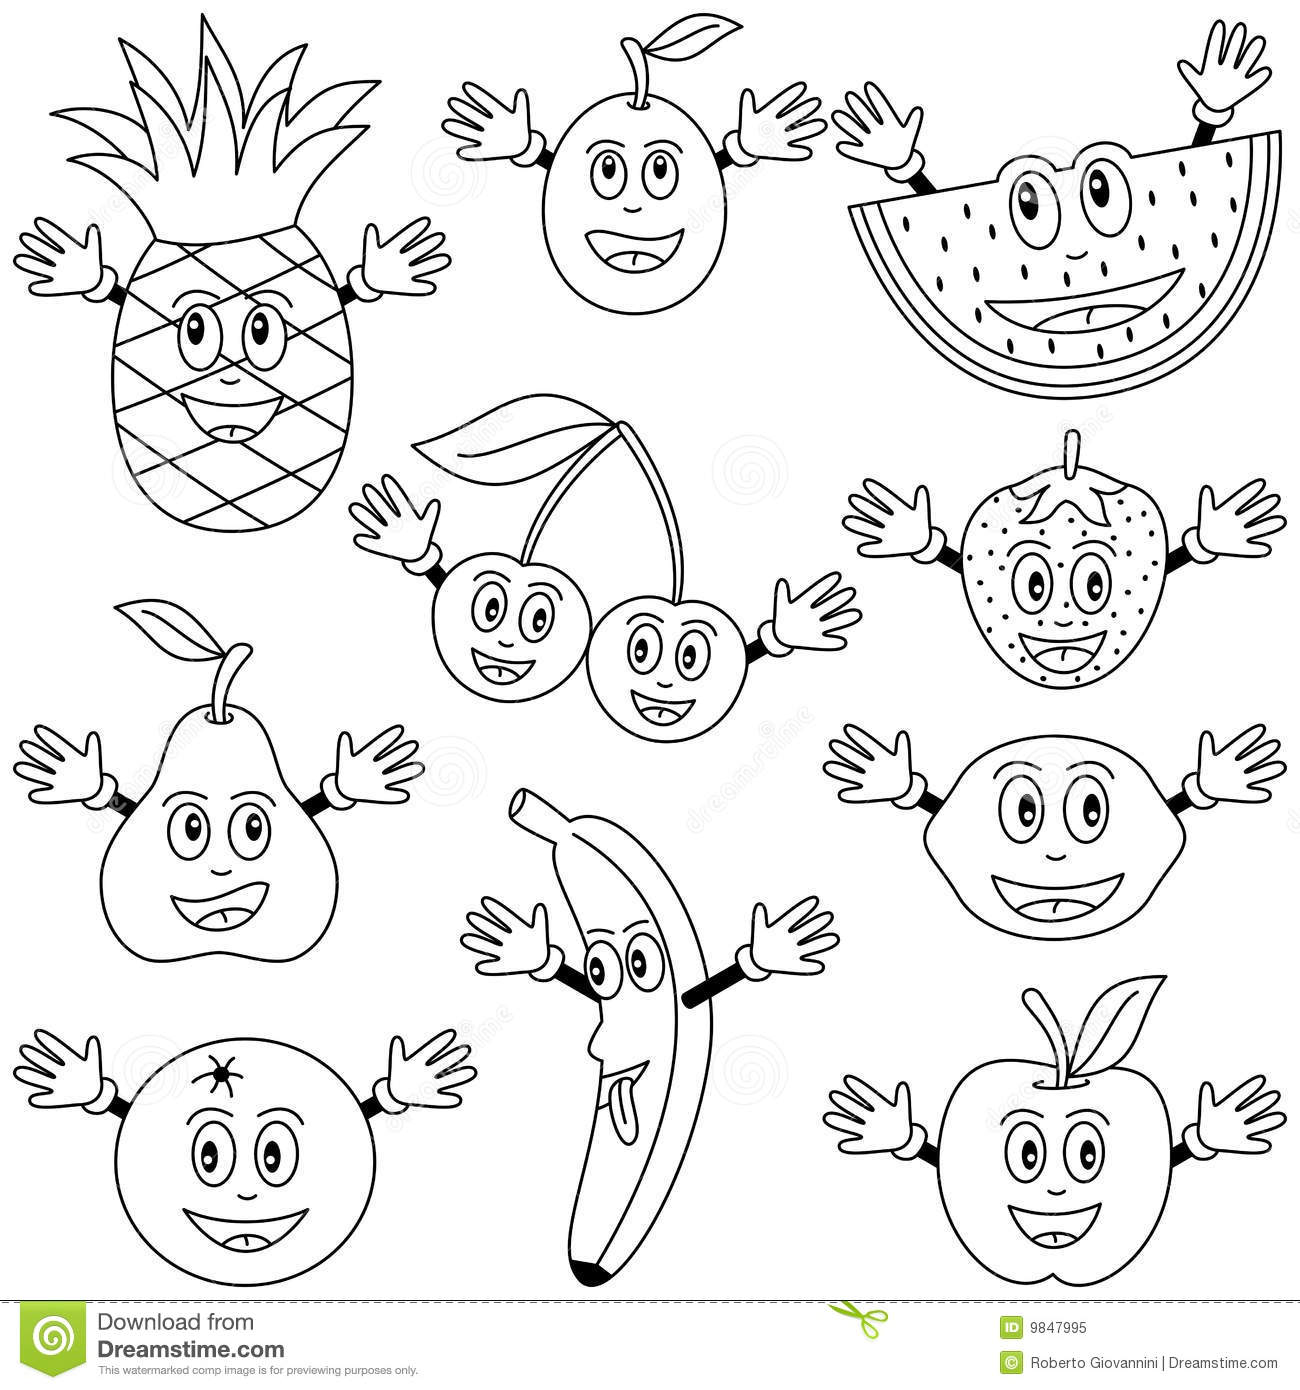 Coloring Fruit Characters Royalty Free Stock Photo Image 9847995